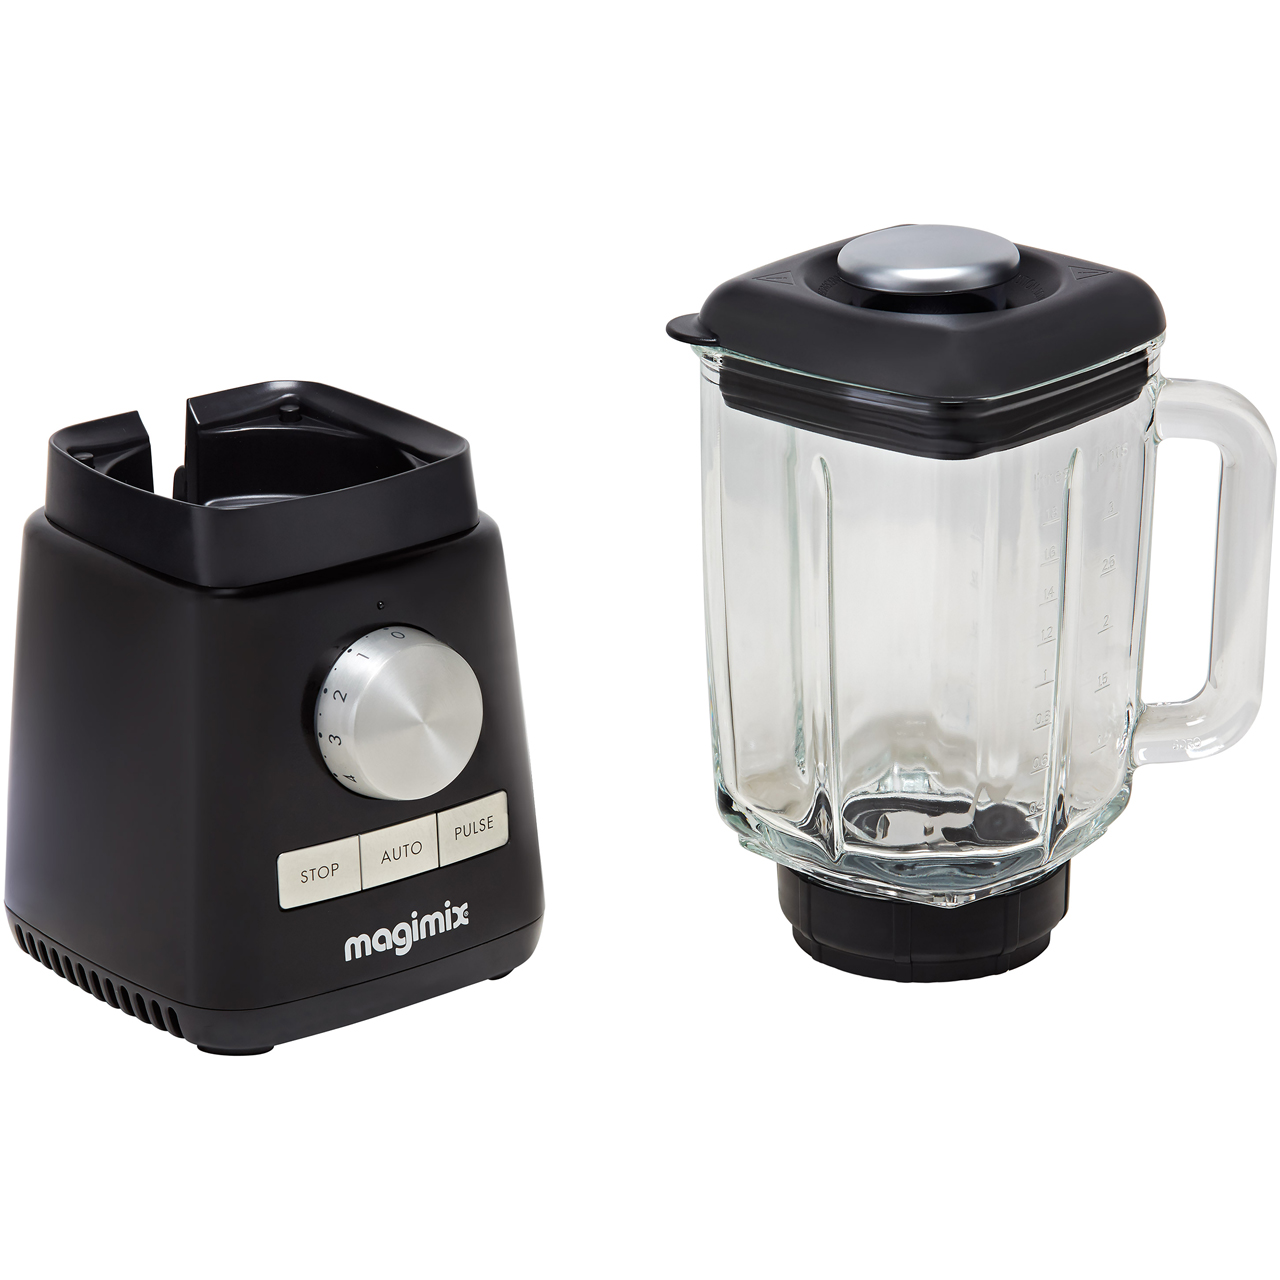 Magimix Le Blender 11610 with 4 Accessories Black